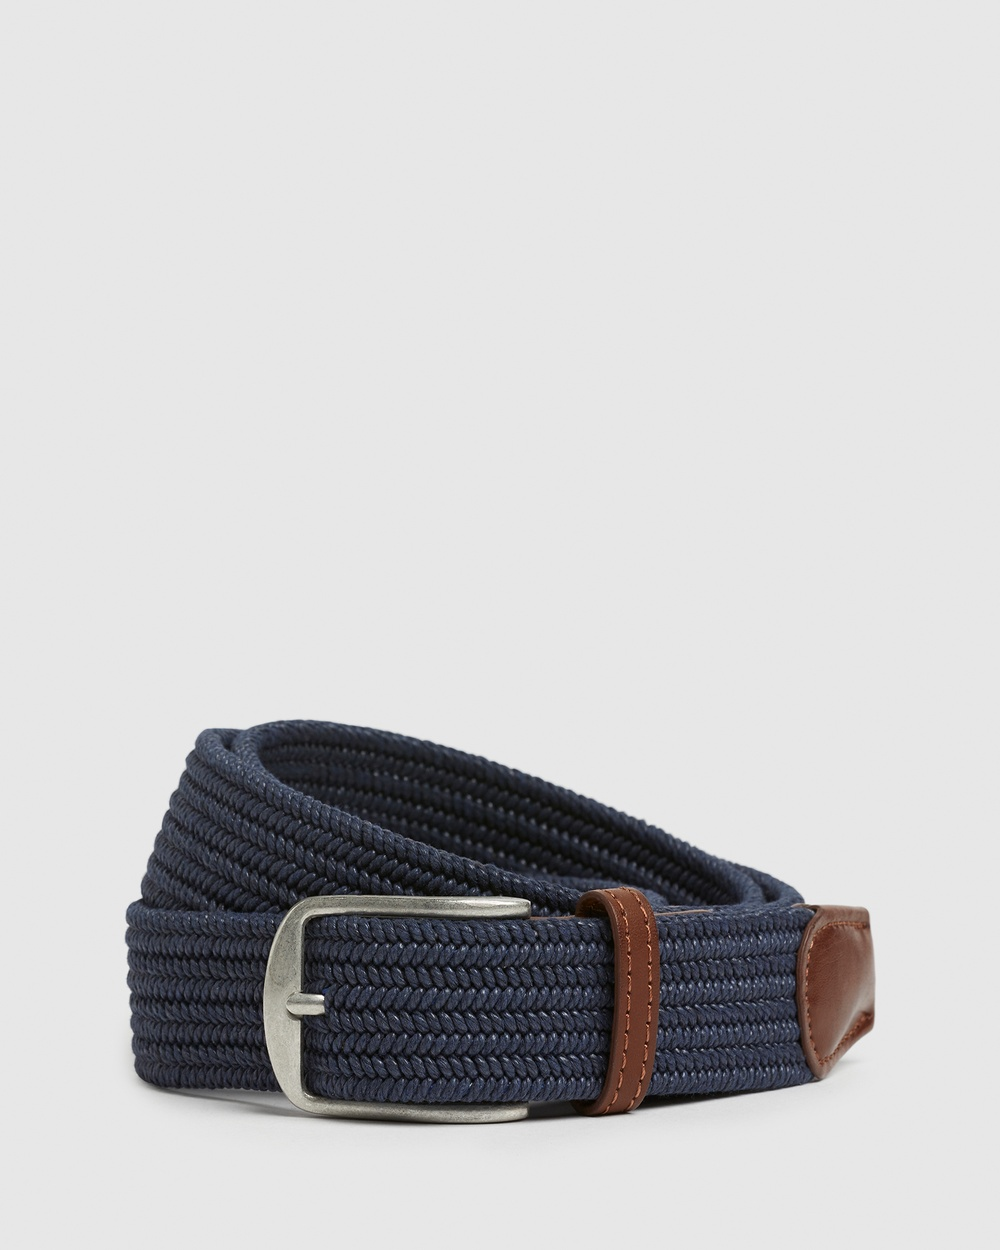 French Connection Woven Stretch Belt Belts NAVY/TAN